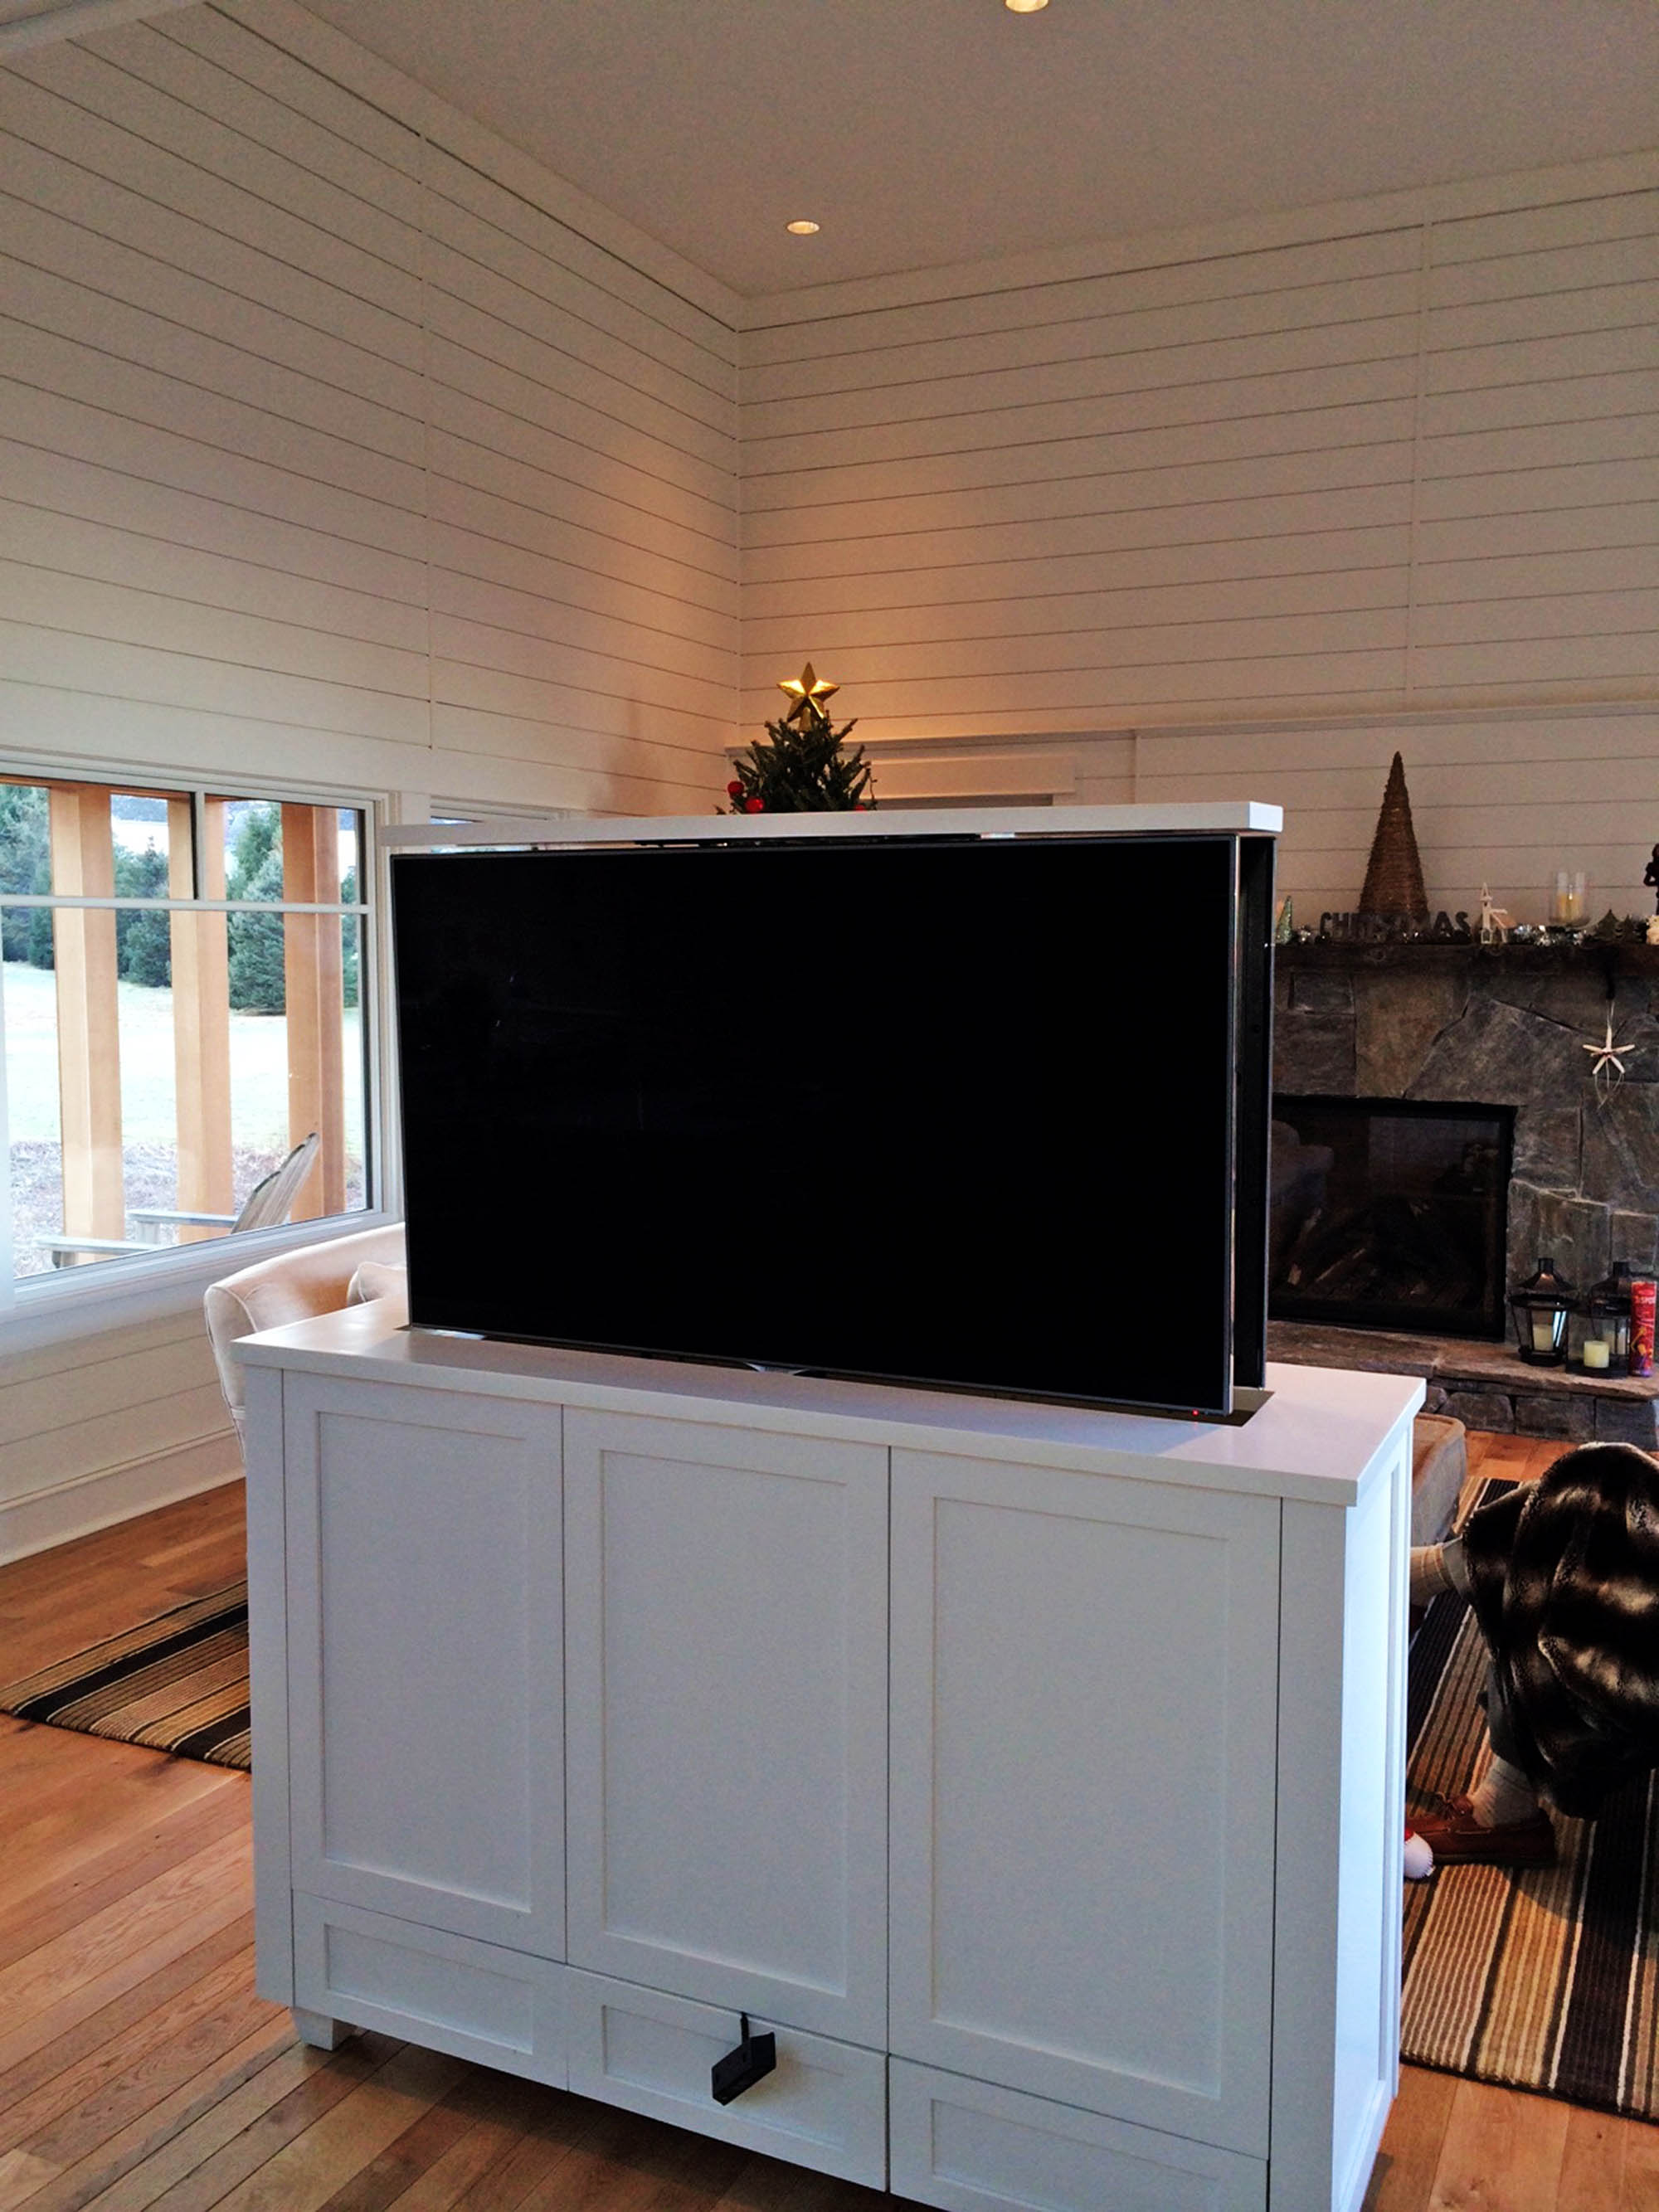 M Series 385 Pop Up Tv Lift Activated Decor